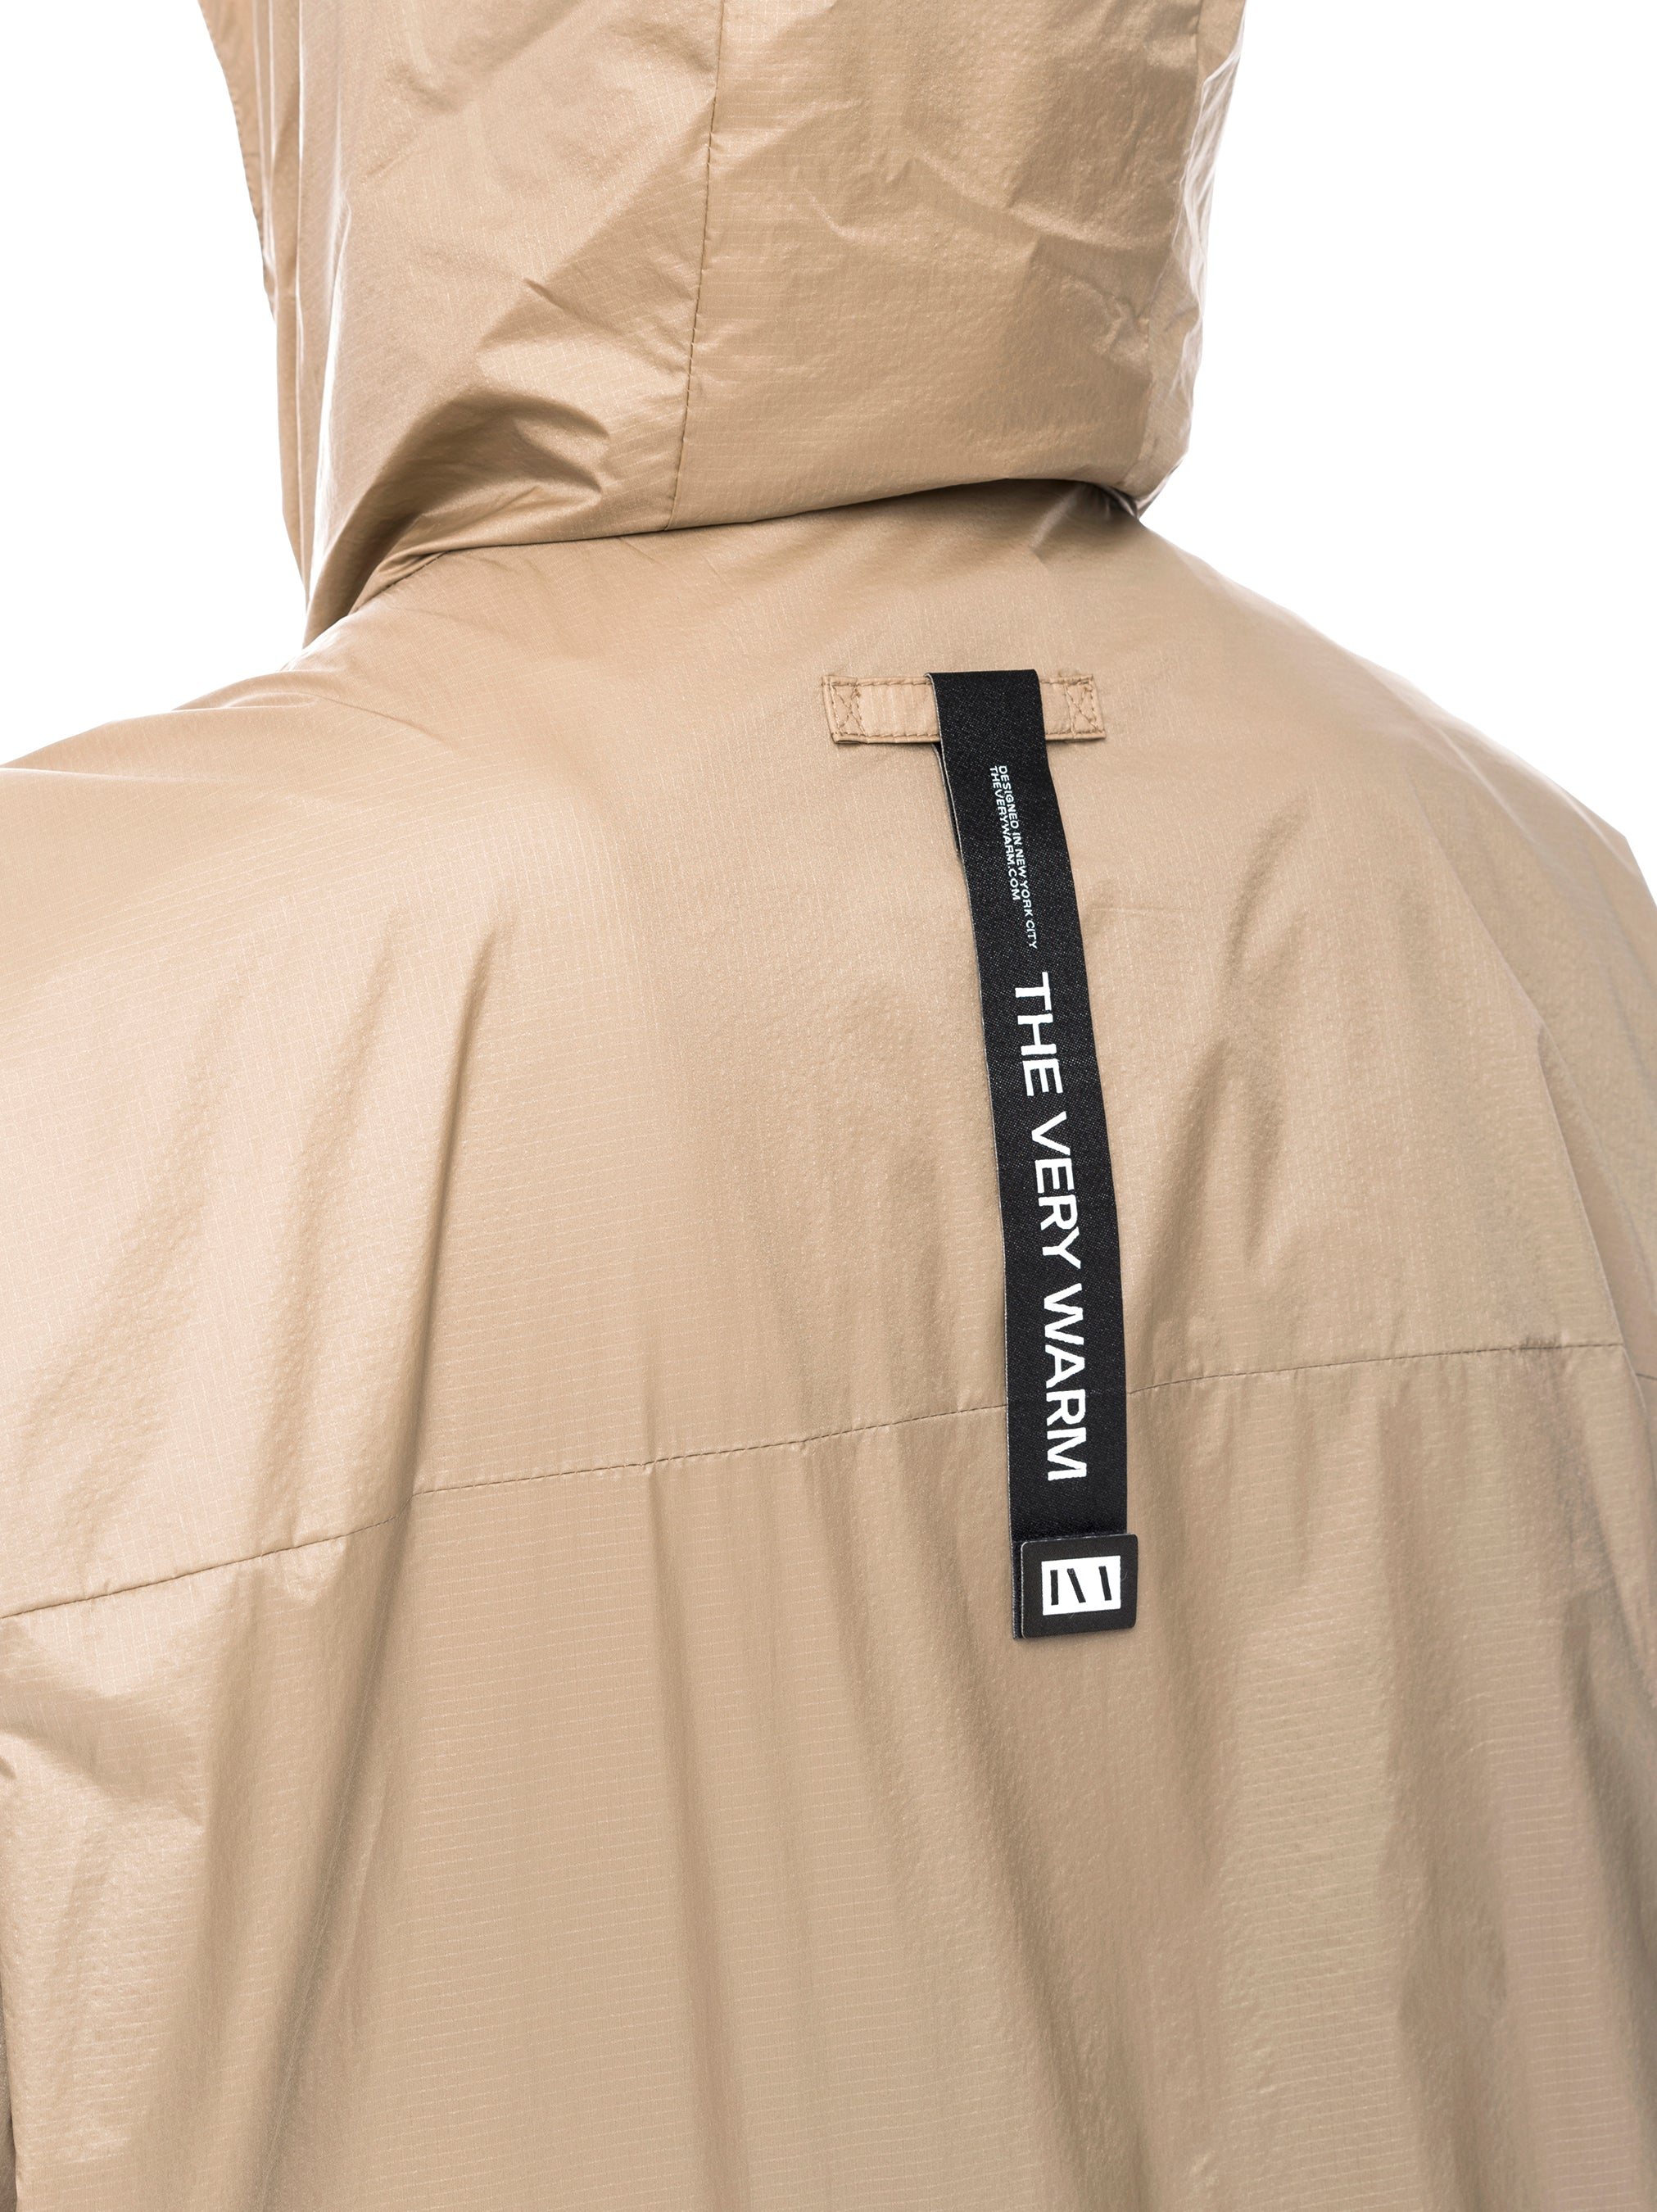 Windbreaker Hooded Windbreaker - Khaki [bomber_Vandal], [The Very Warm], [The Very Warm]